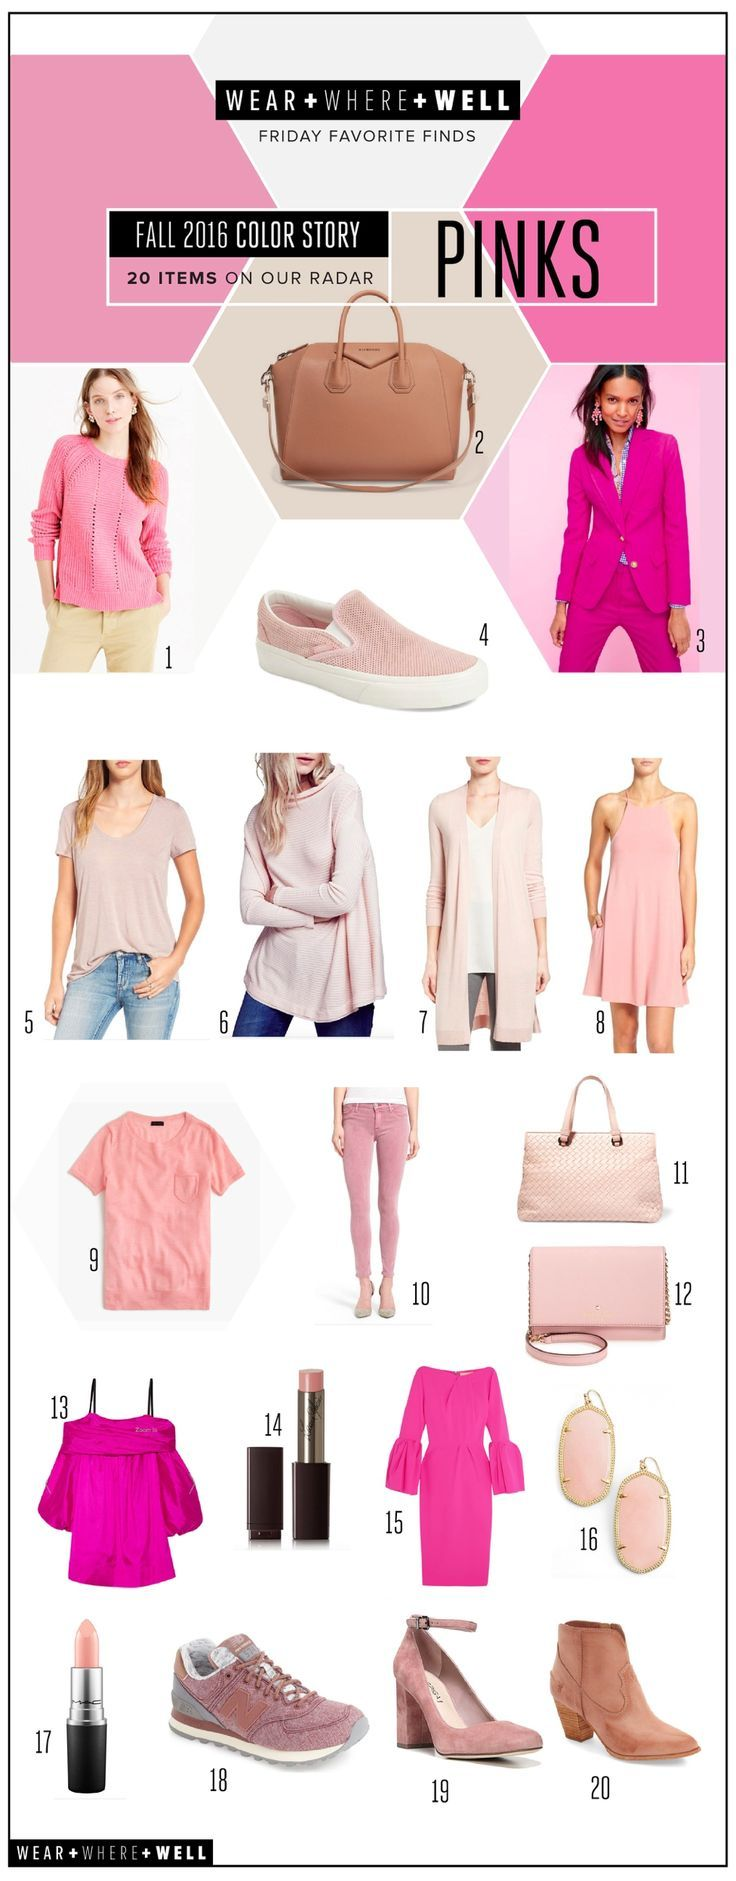 Wear + Where + Well : 20 Pink Items on Our Radar... Pink is the hot color for fall 2016!